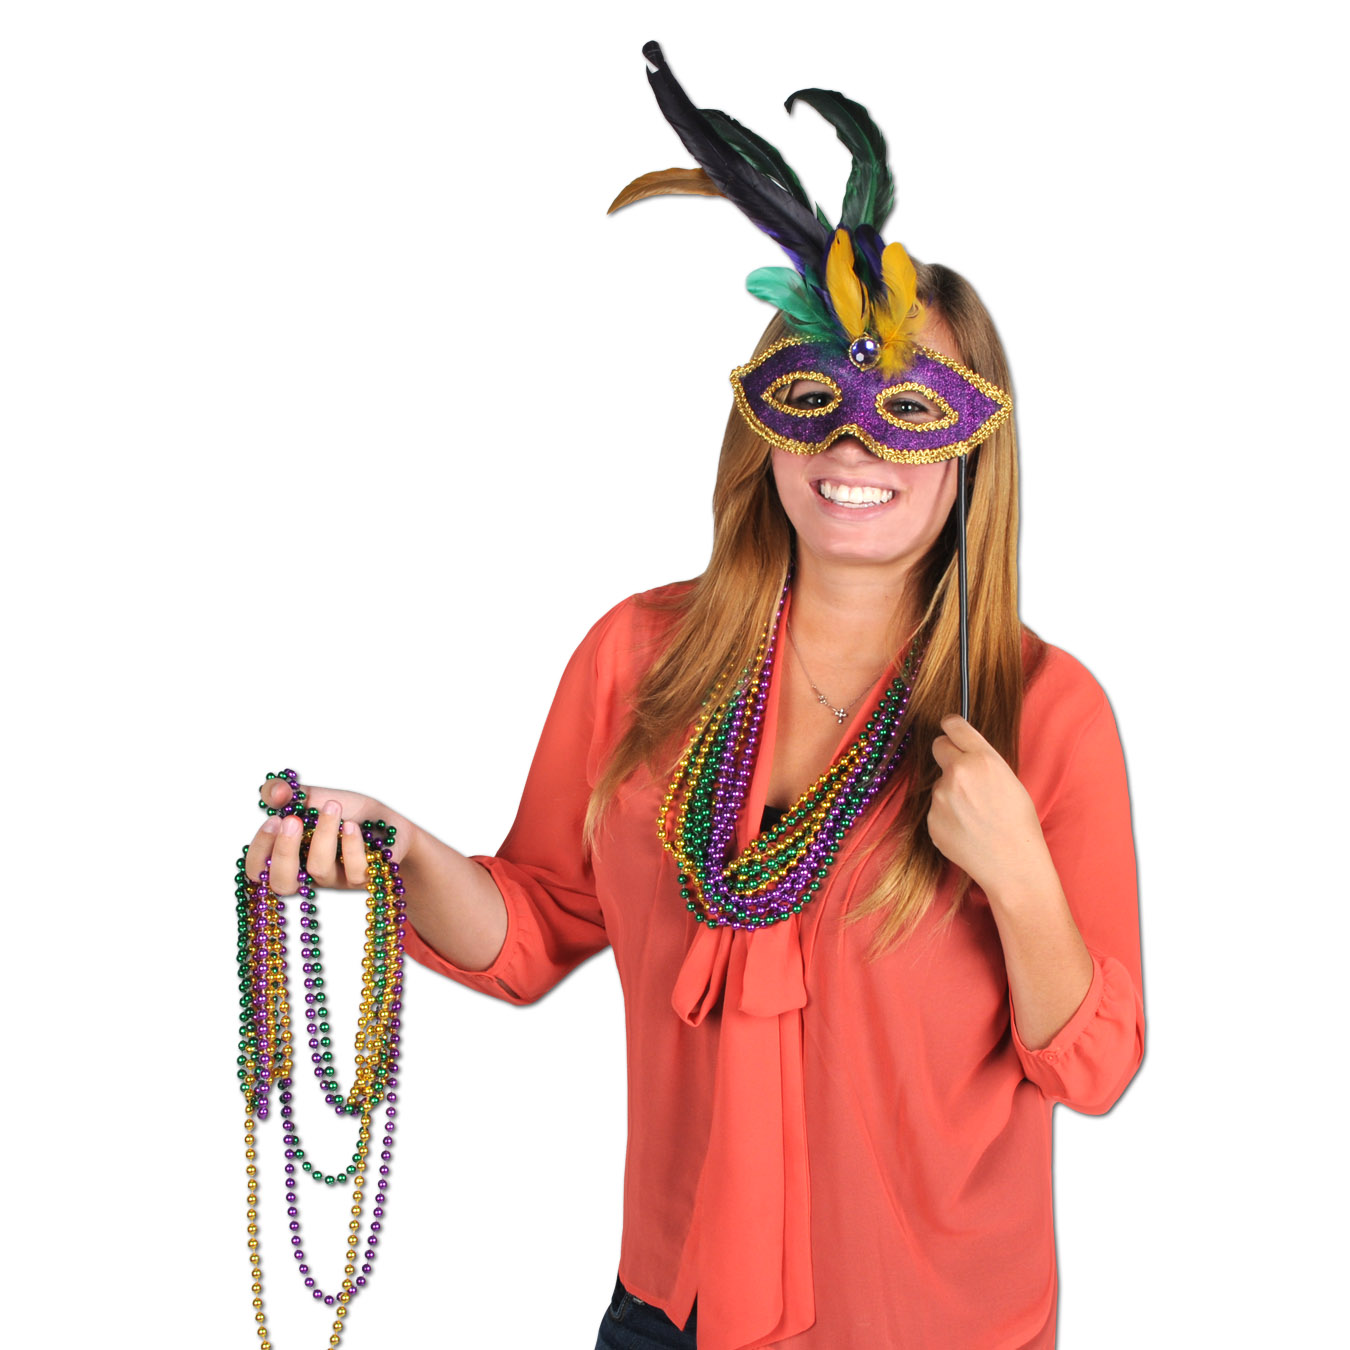 Feathered Mask w/Stick (Pack of 12) Feathered Mask with Stick, decoration, party favor, mardi gras, wholesale, inexpensive, bulk